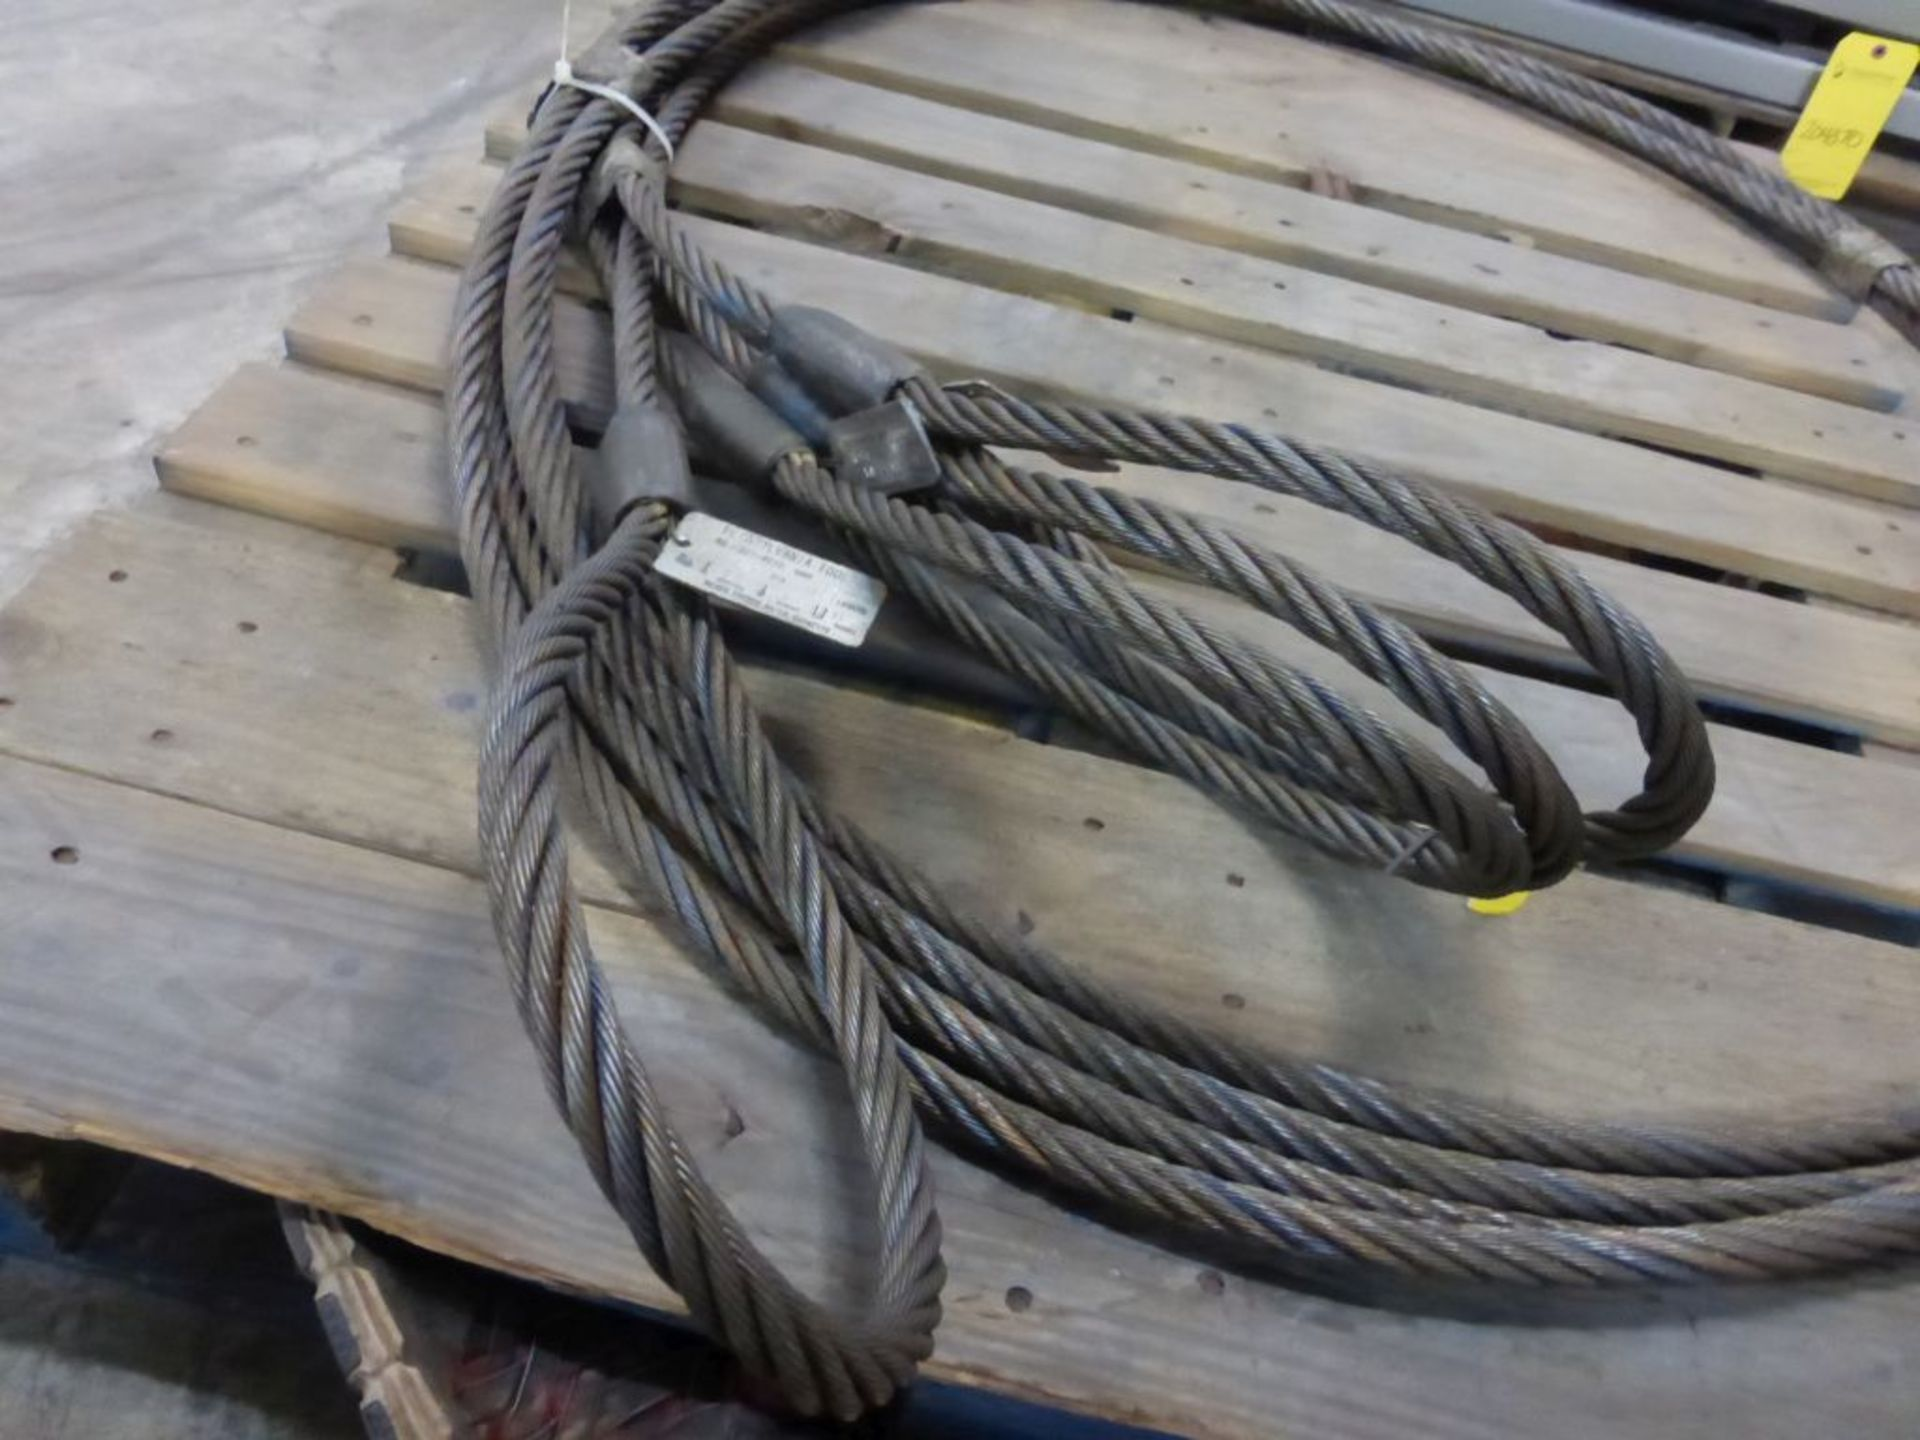 Lot of Pennsylvania Tool Wire Rope - Image 4 of 9